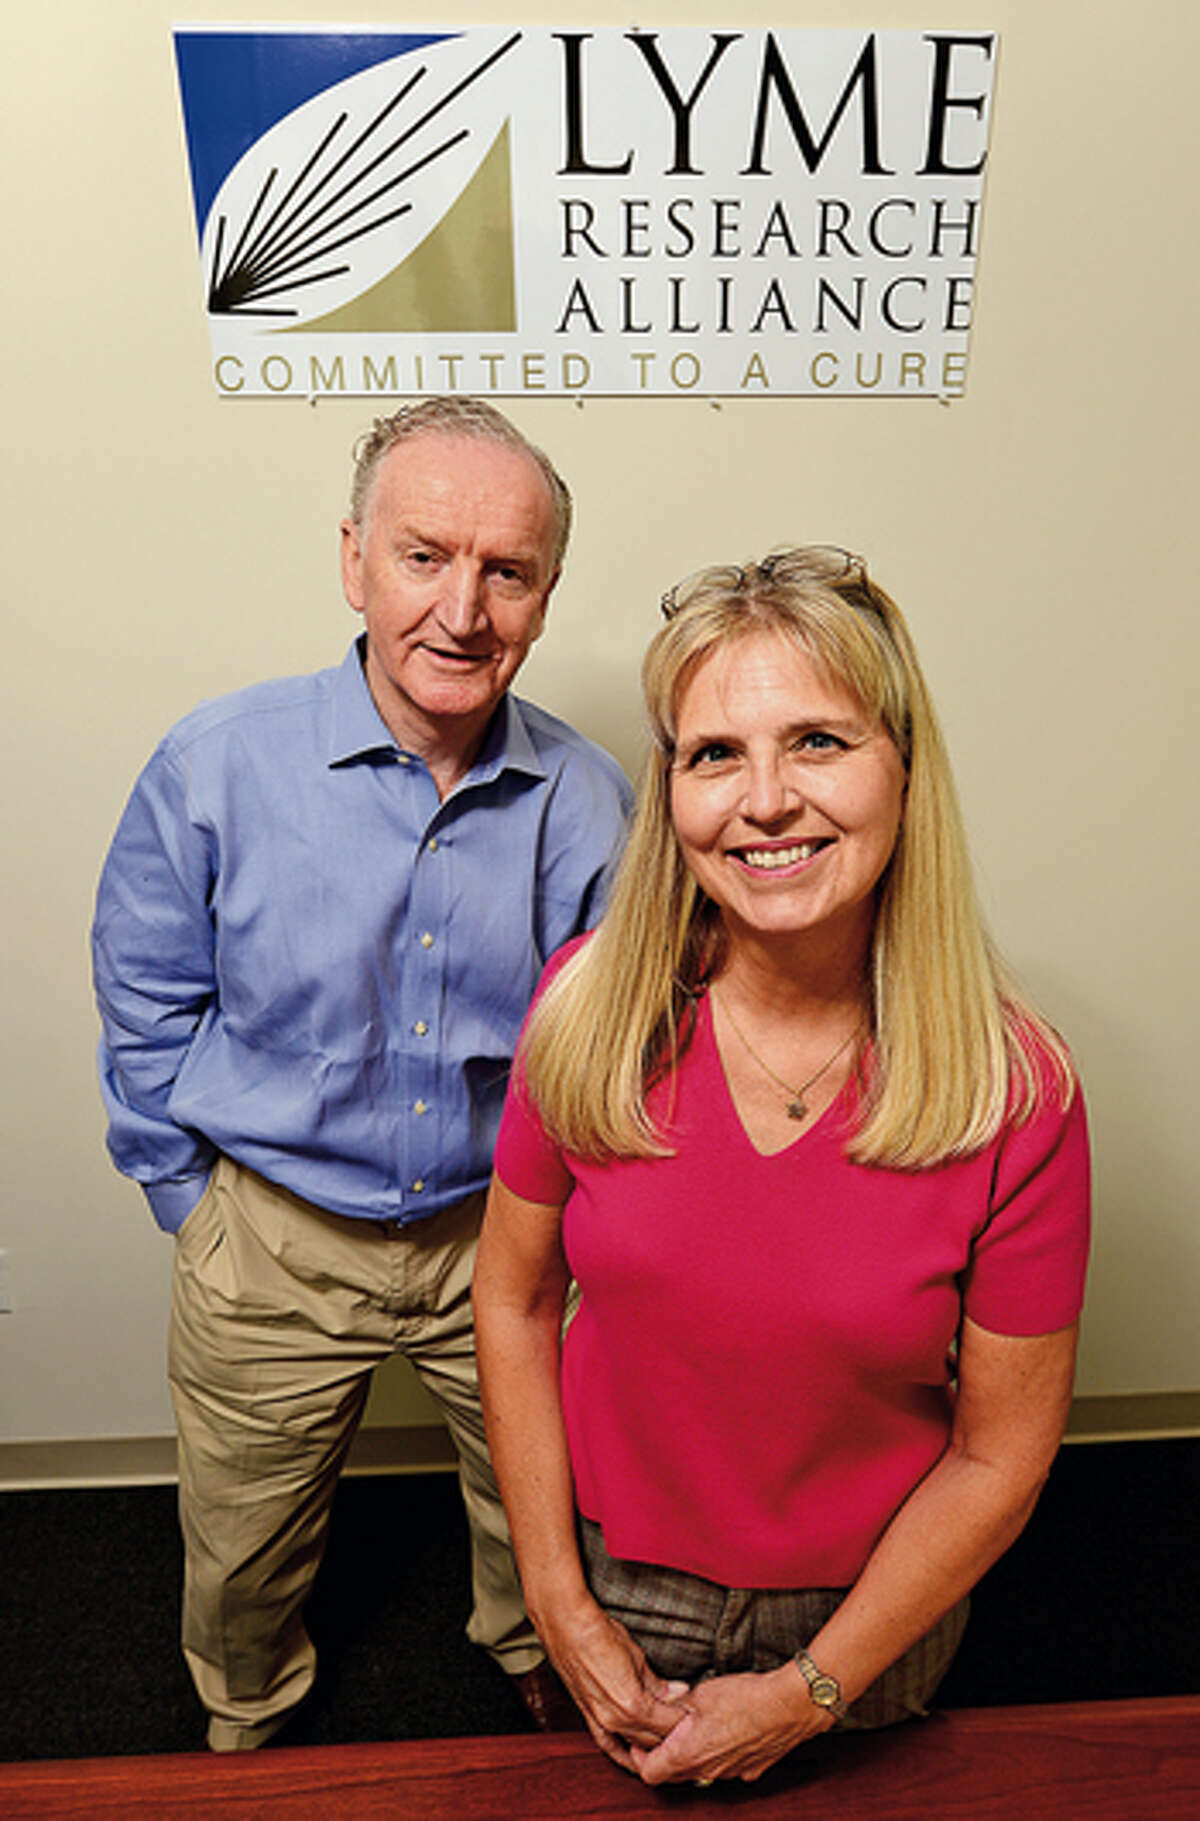 Lyme Research Alliance Executive Director Peter Wild and volunteer Janet Vaccaro, who is helping LRA get the word out about Lyme disease.